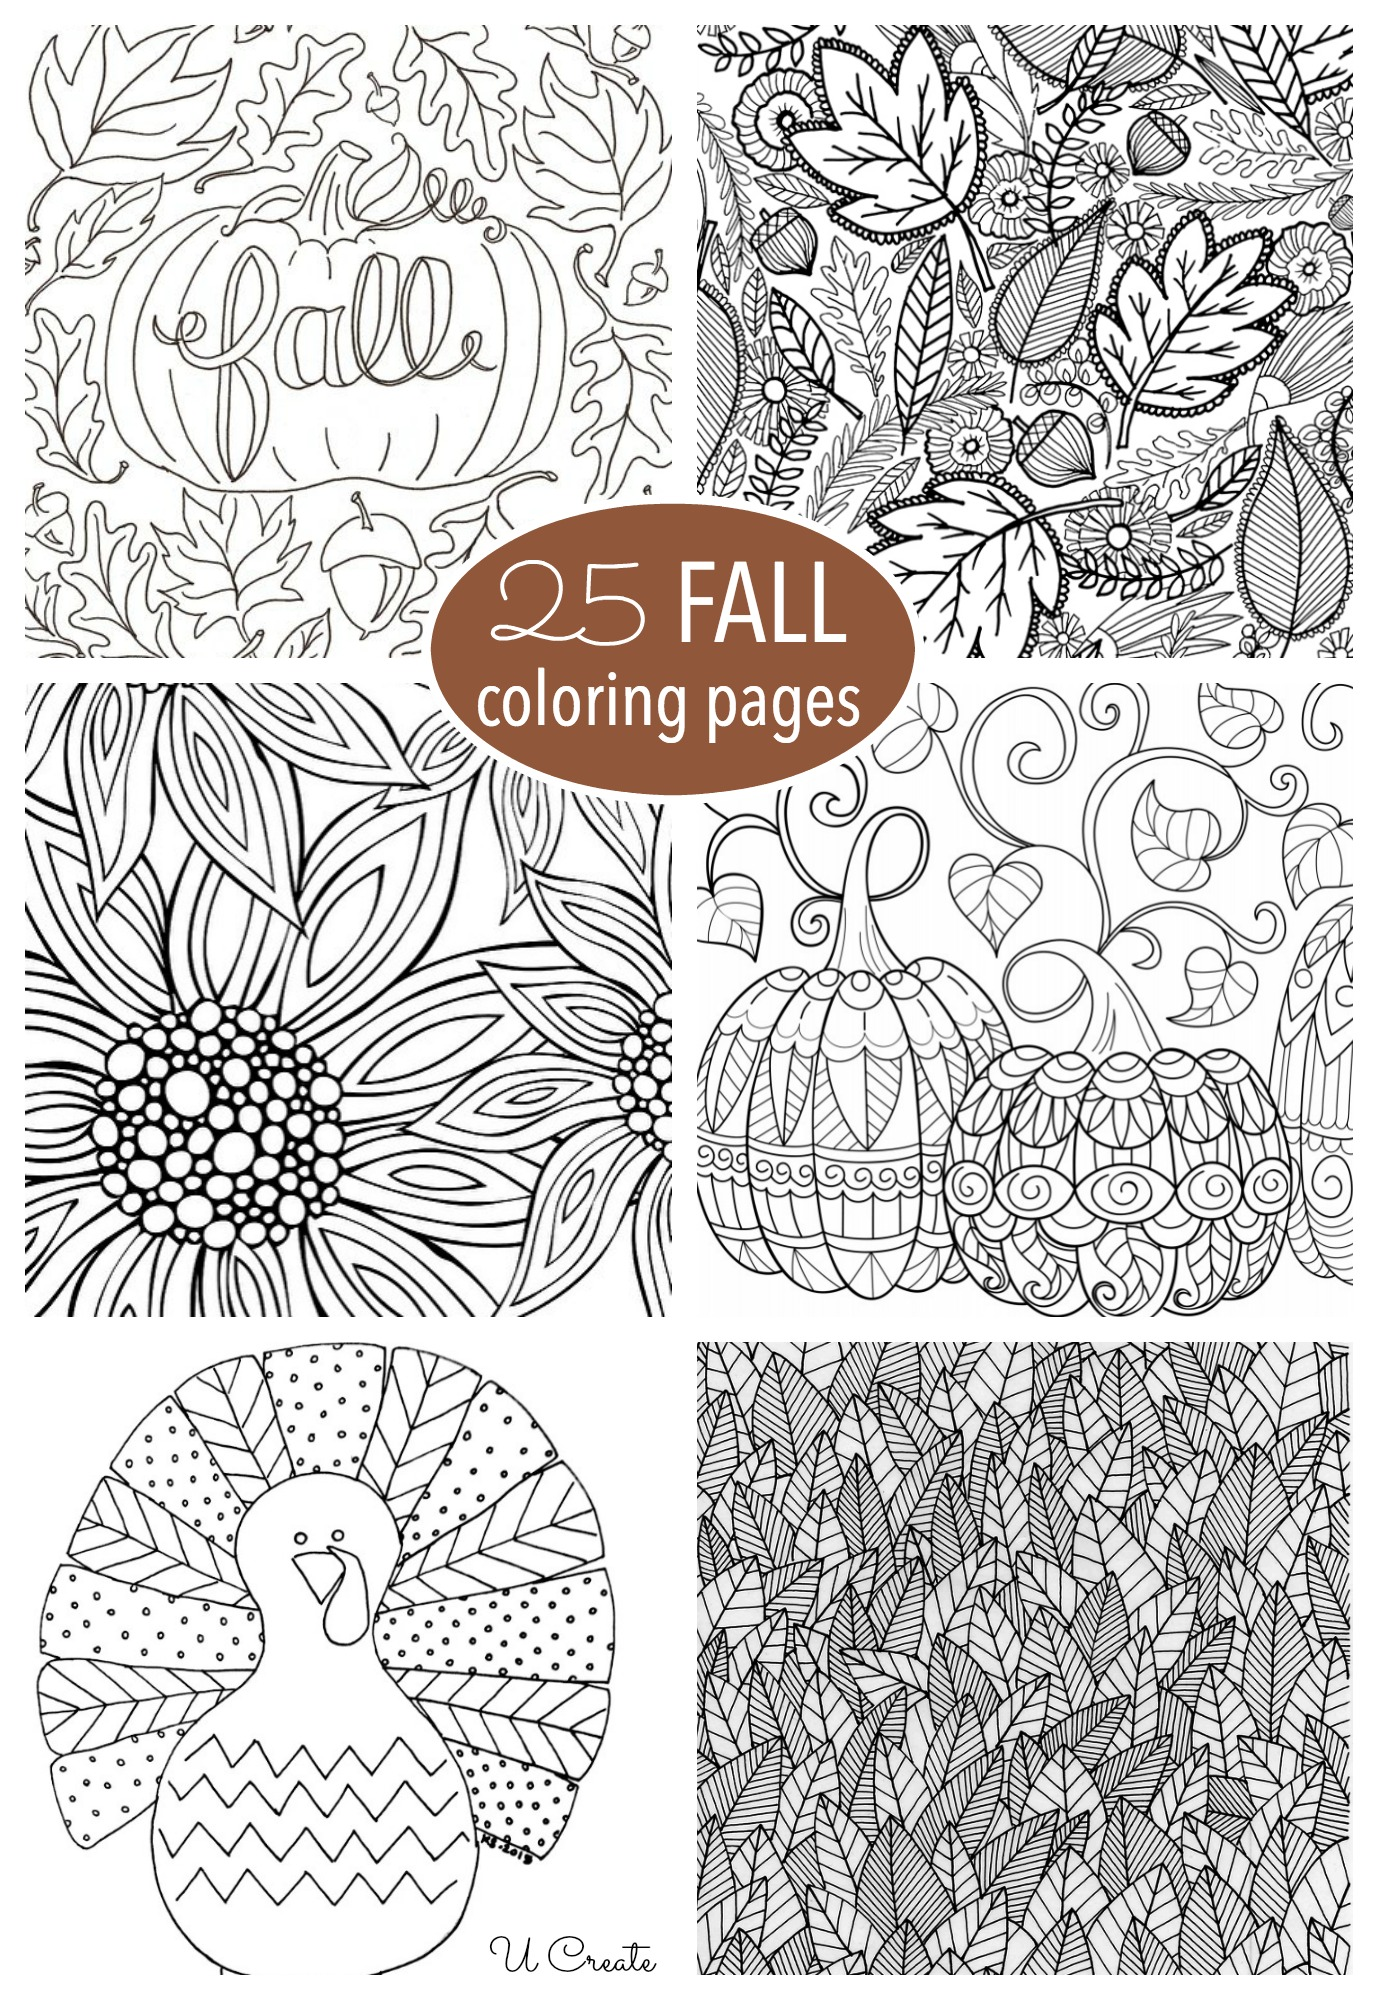 free printable fall coloring pages at u createcraftscom